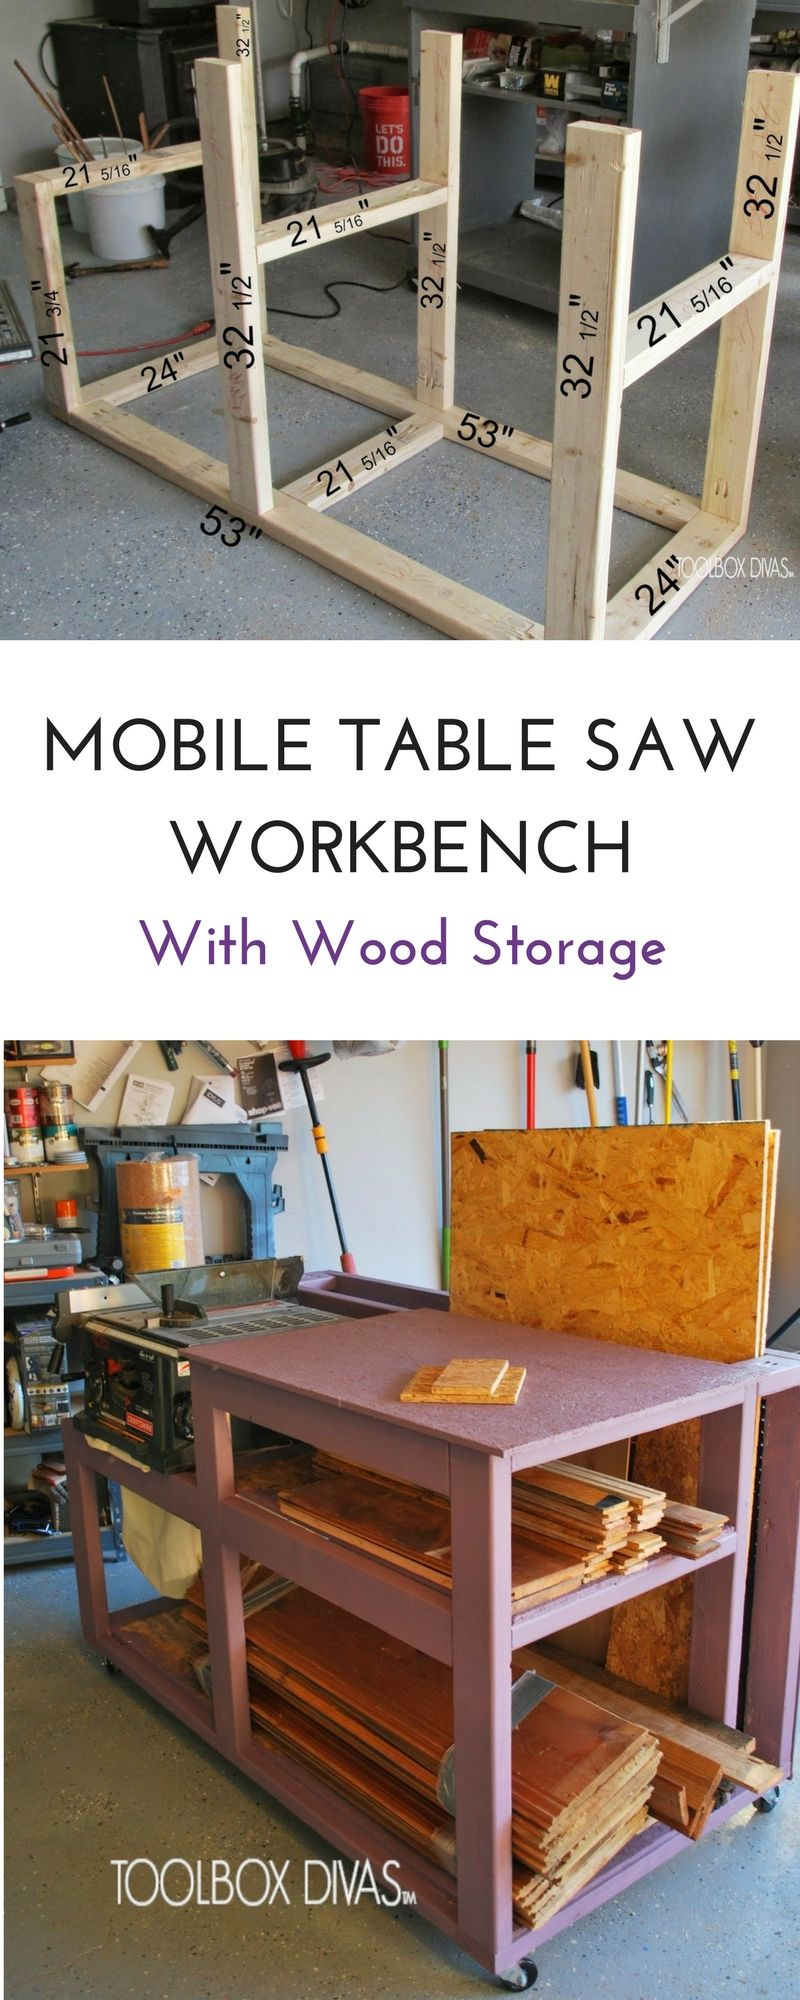 roubo sjobergs hobby workbench hardware and birch com bench plus workbenches woodworking excellent tops egorlin amazing photos